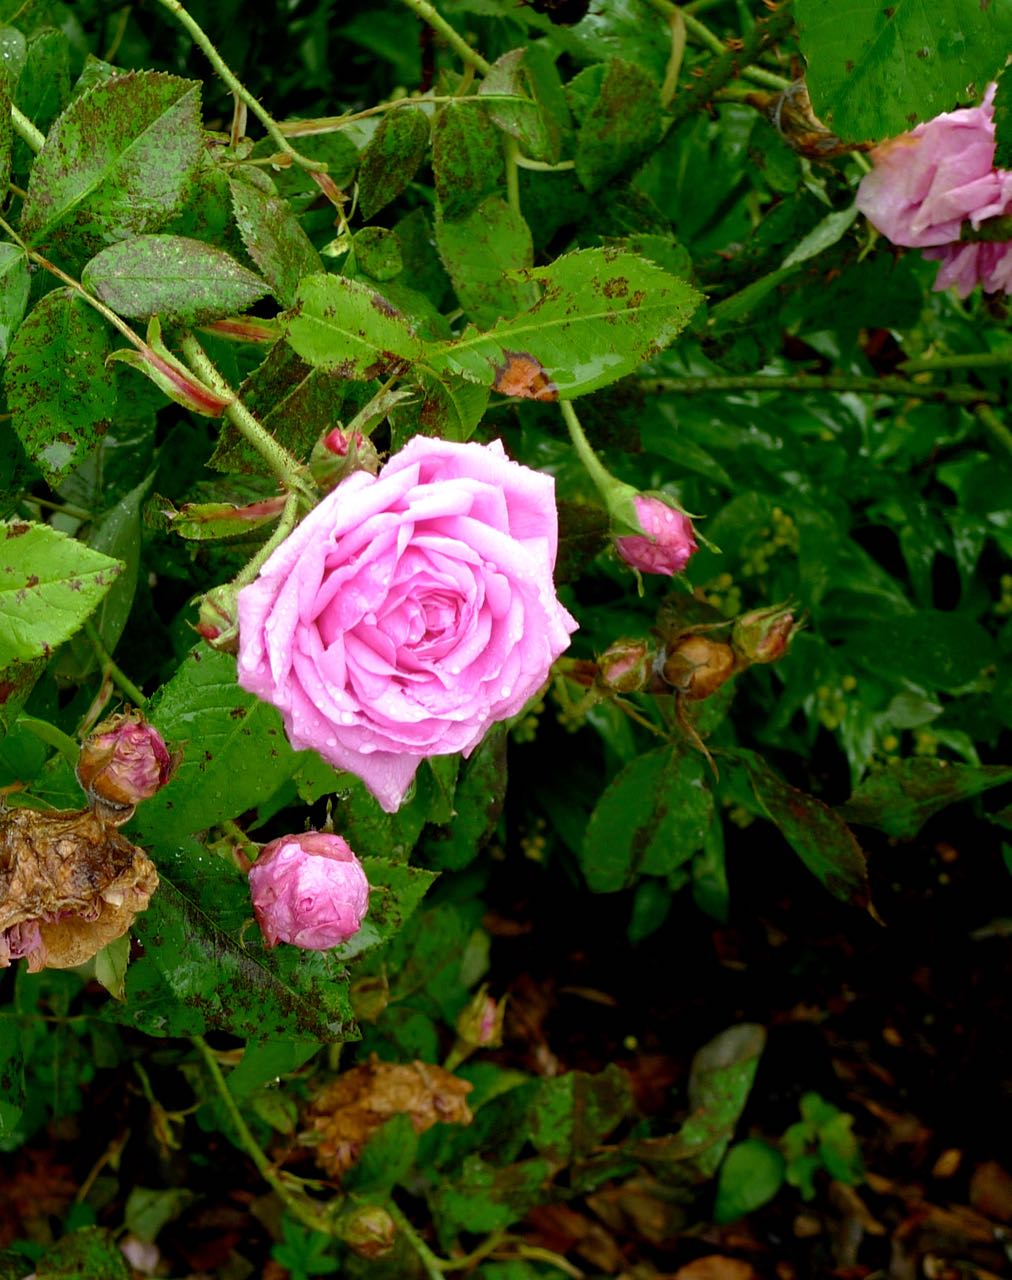 Roses in every stage of their flowering life